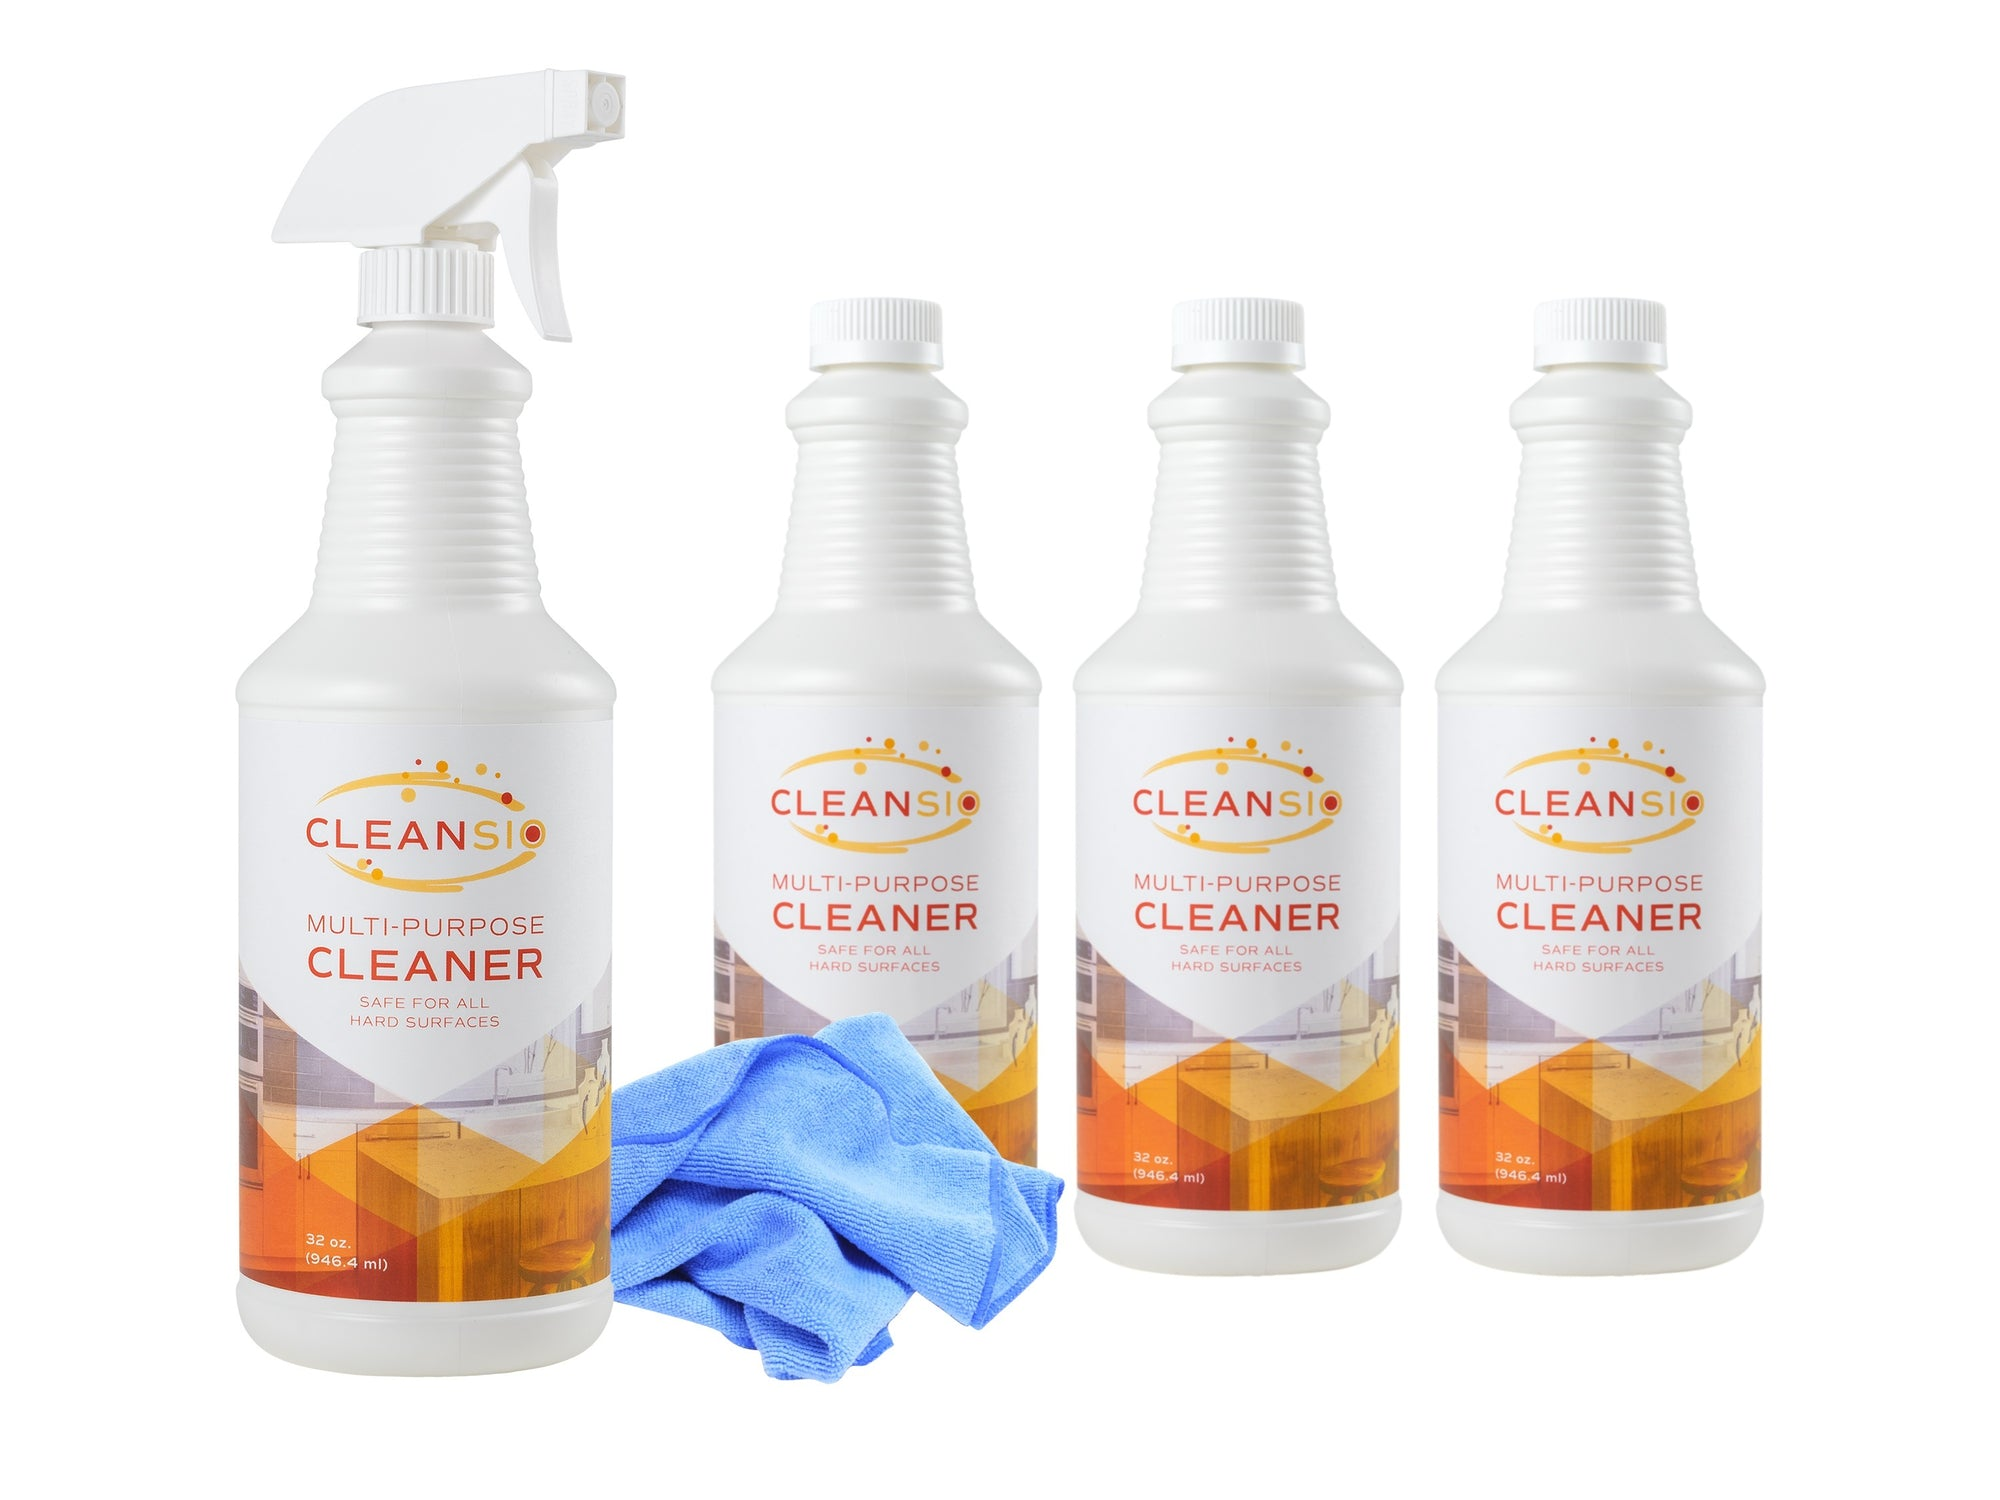 Cleansio Multi-Purpose Cleaner Family Bundle – Fragrance Free, 32 oz – 4 pack, Sprayer Nozzle, and Microfiber Towel